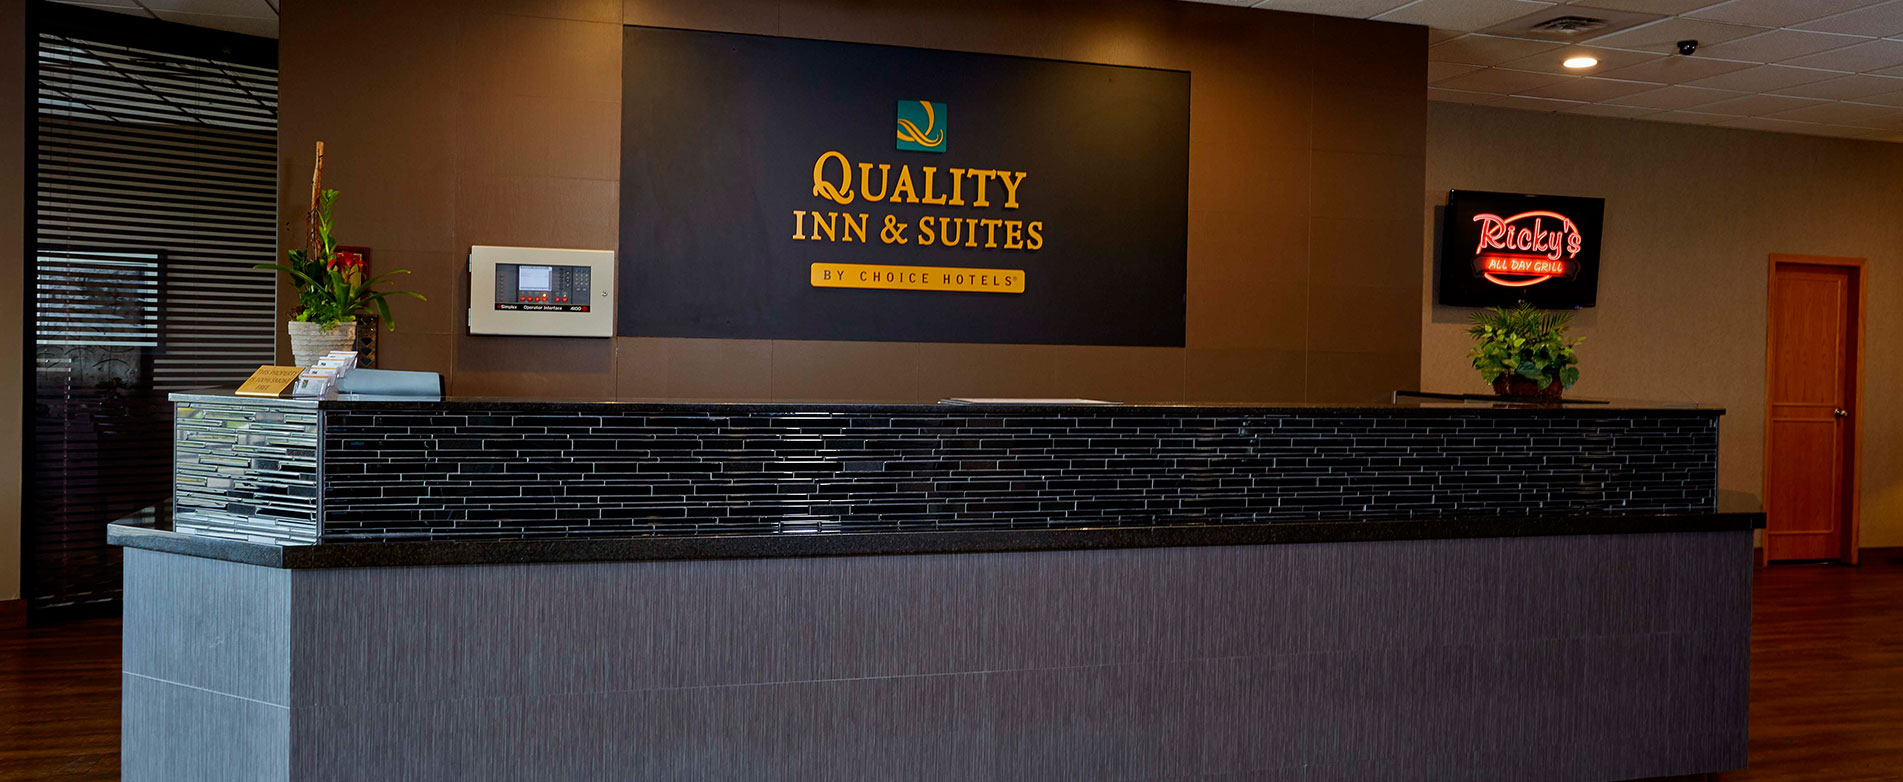 Contact our Saskatoon Hotel today!